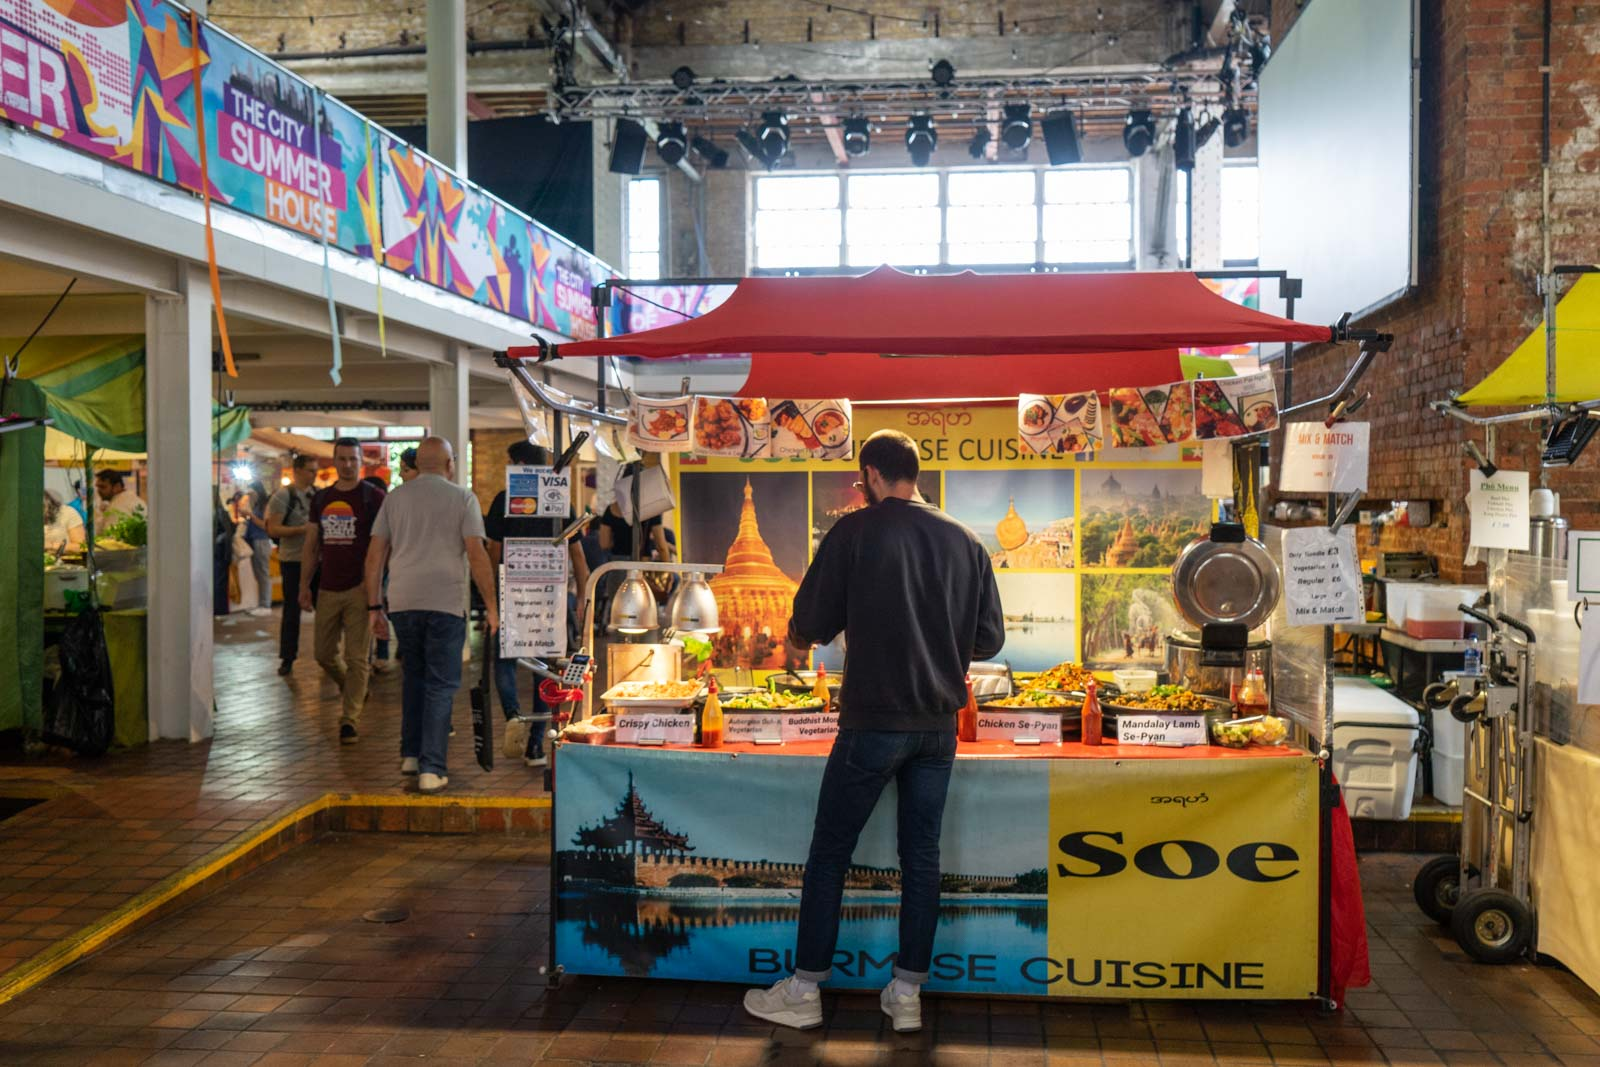 Best Curry Brick Lane >> 13 of the Best Things to do in Whitechapel, London, England